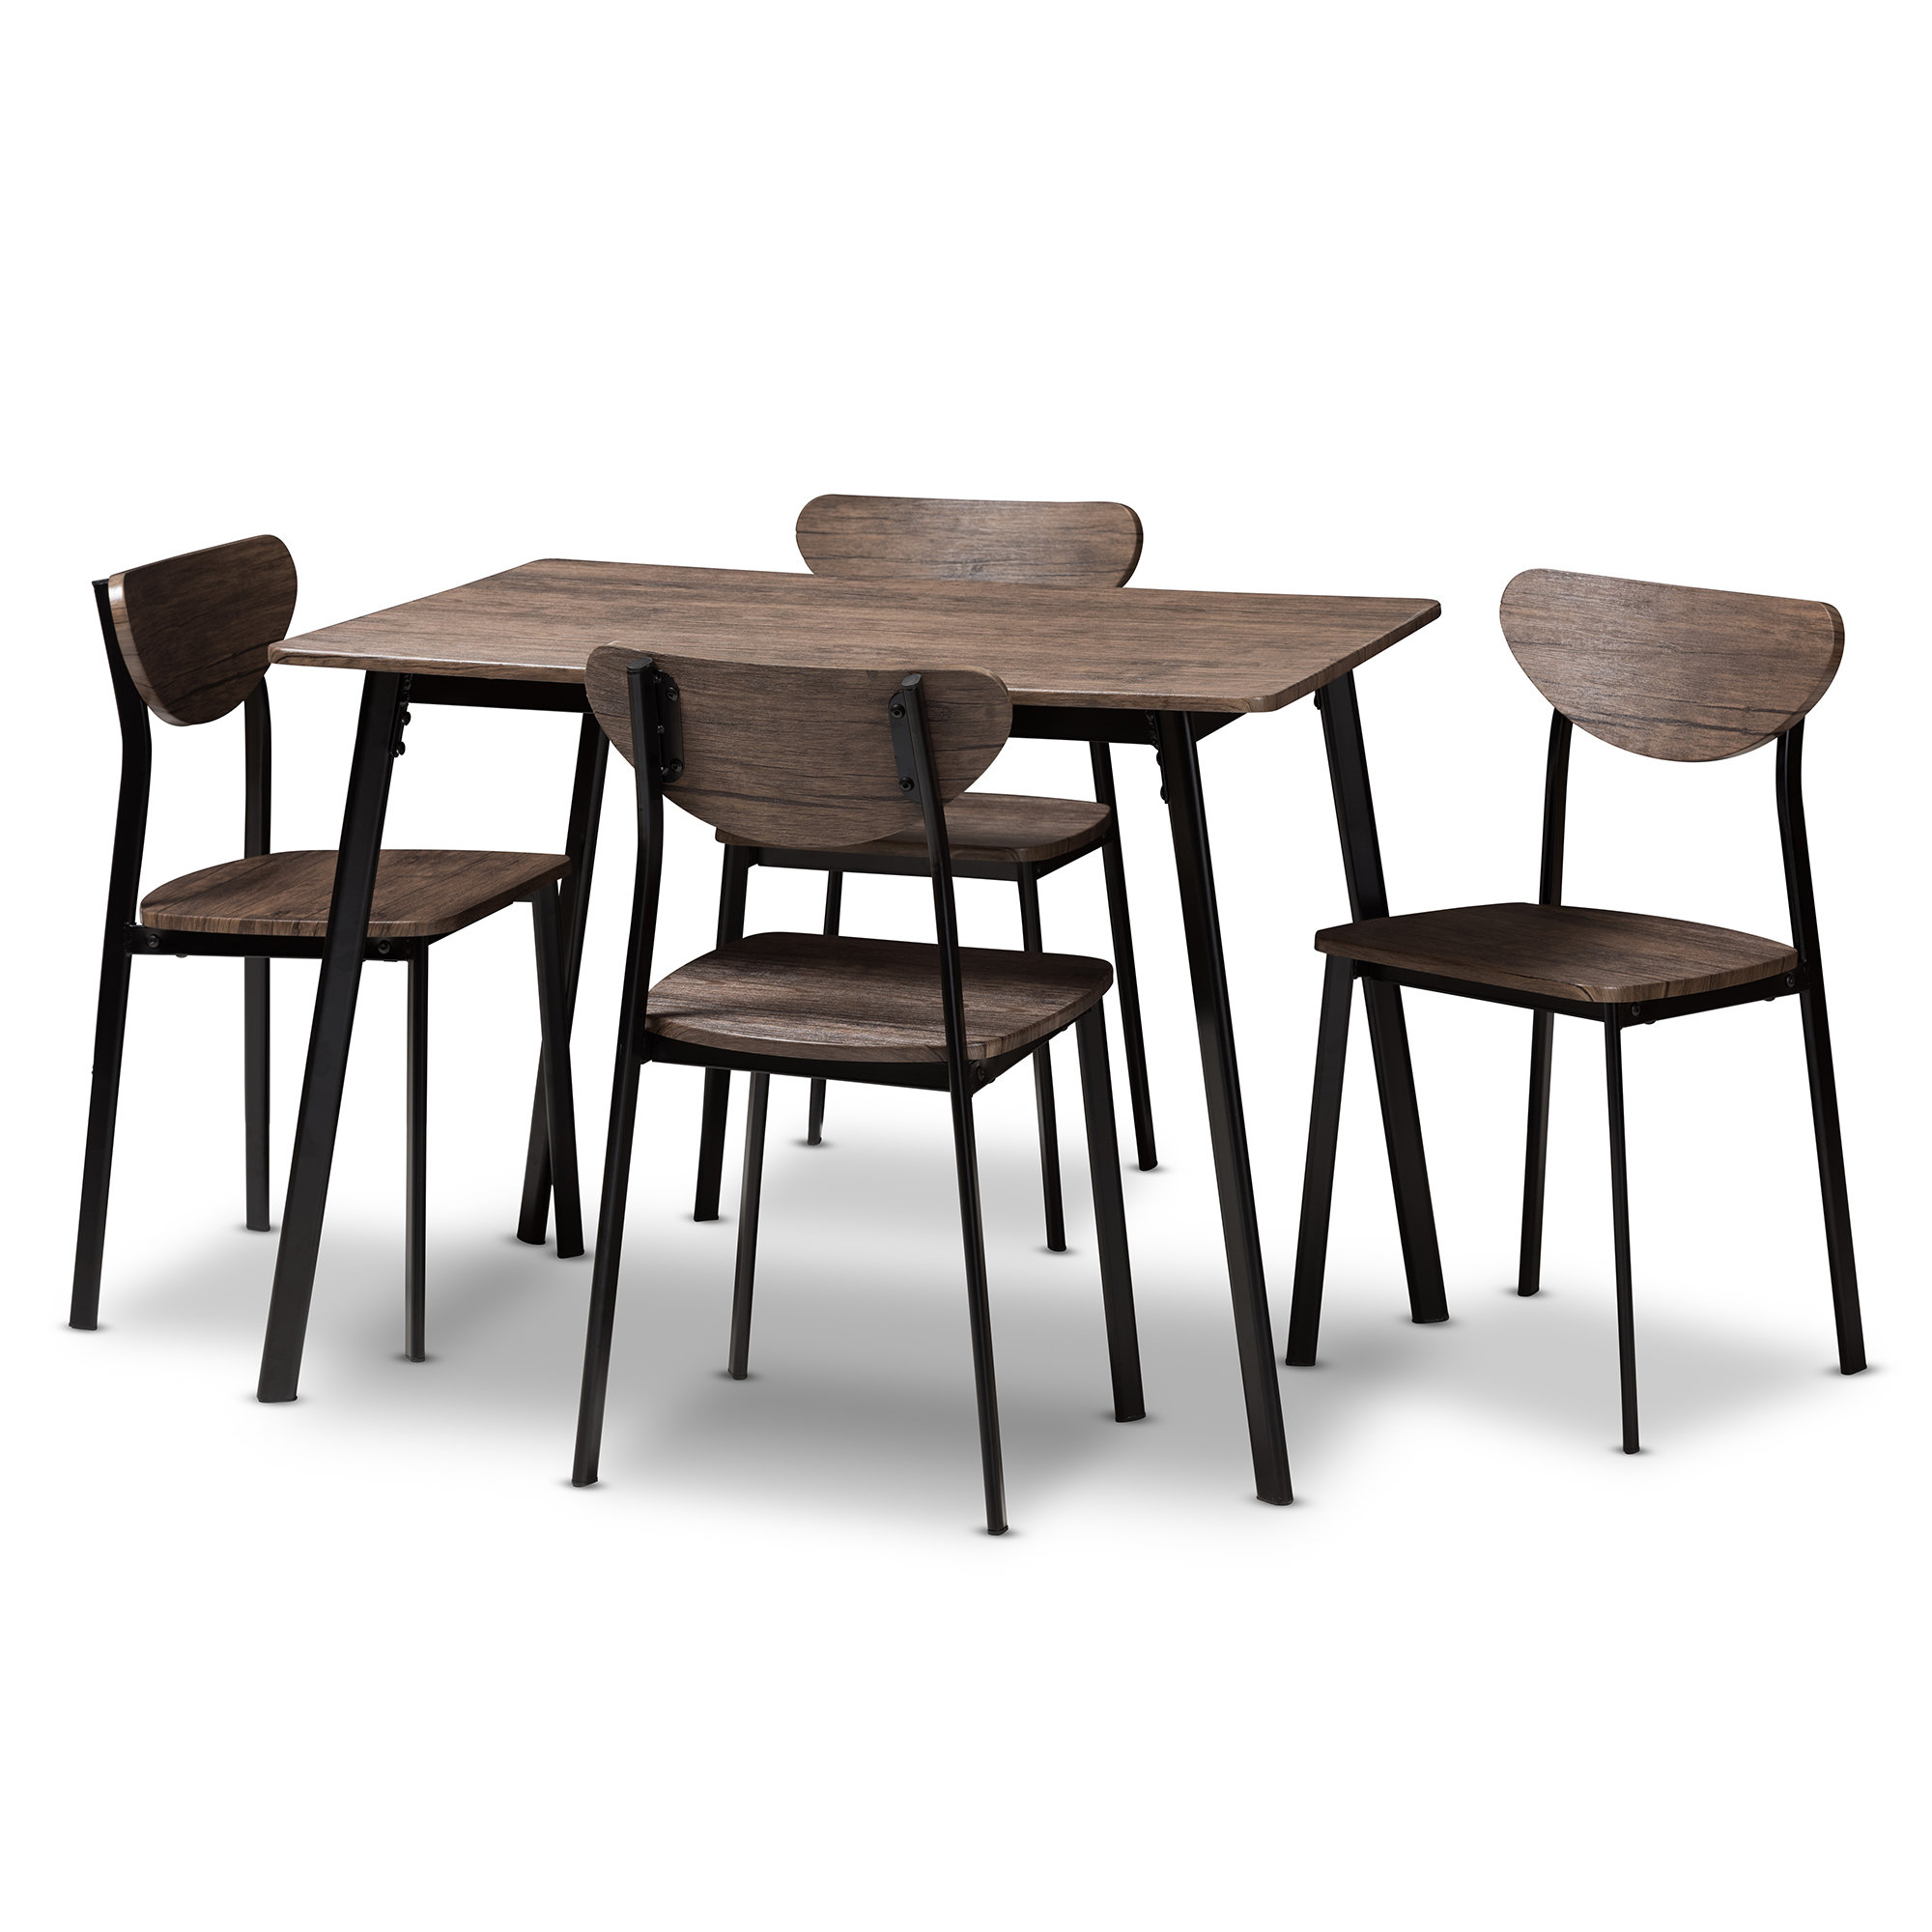 Tejeda 5 Piece Dining Set Throughout Most Up To Date Castellanos Modern 5 Piece Counter Height Dining Sets (Photo 2 of 20)